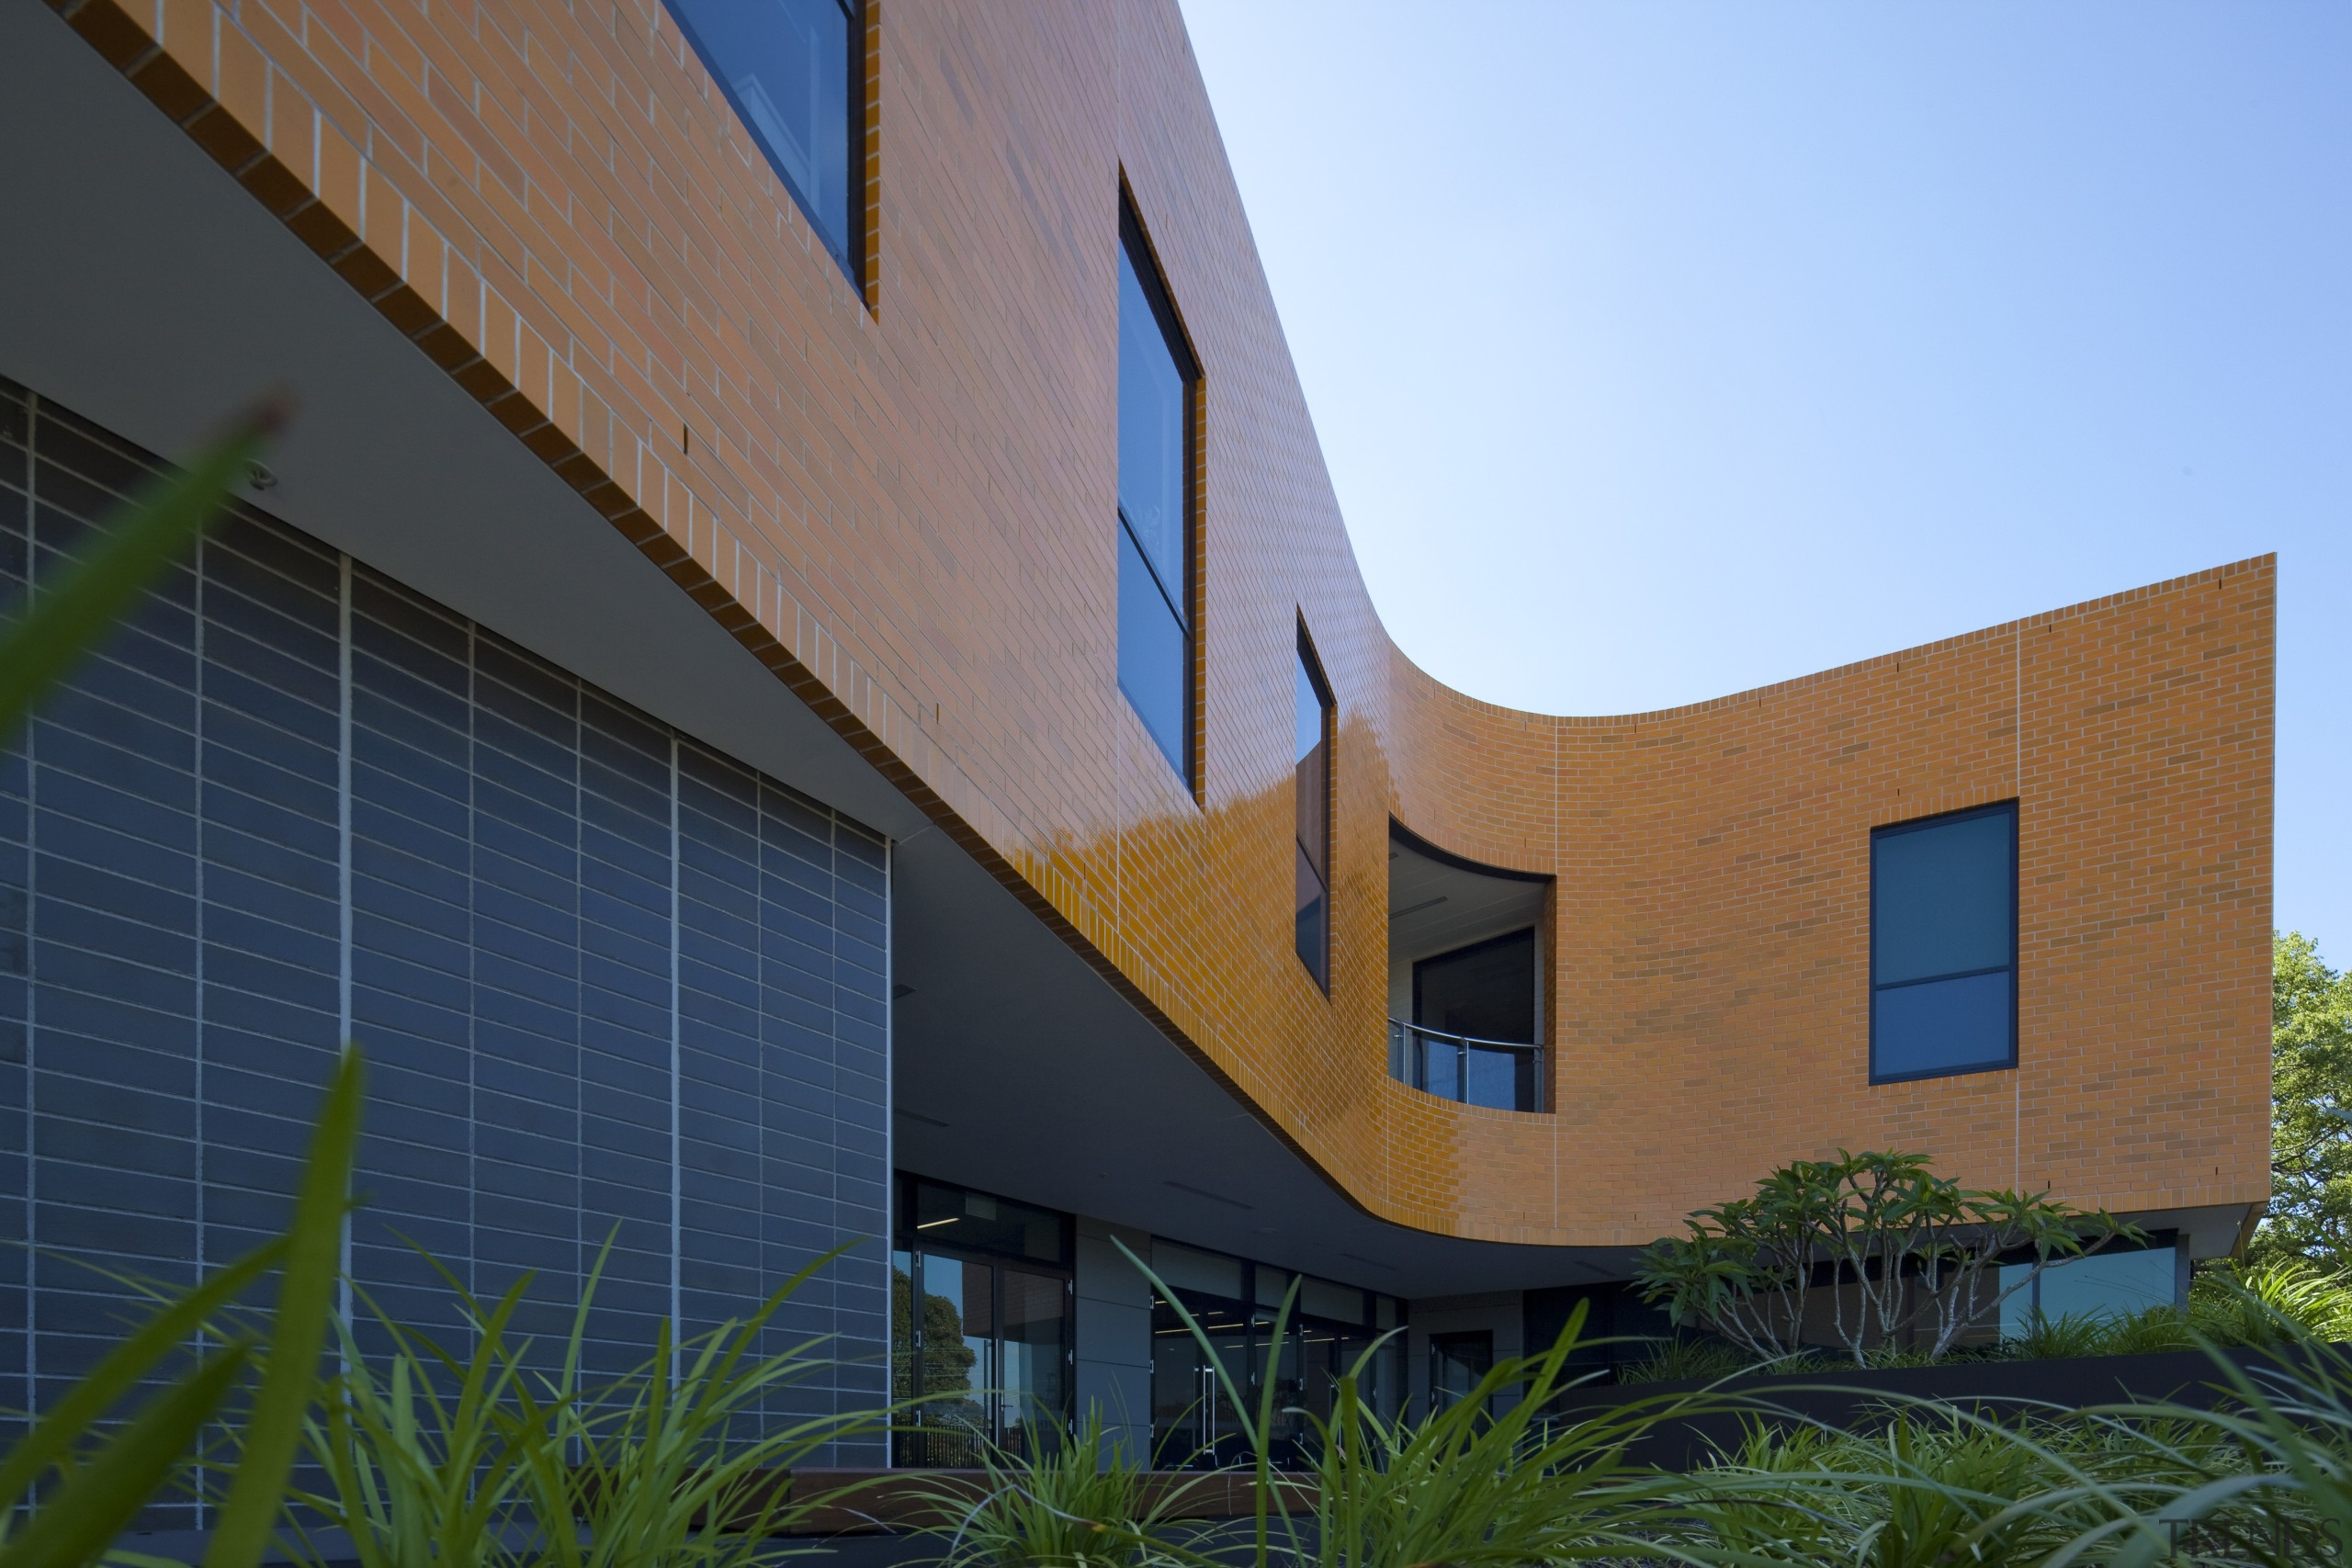 Exterior view of the Poche Centre which was architecture, building, corporate headquarters, elevation, facade, home, house, real estate, residential area, sky